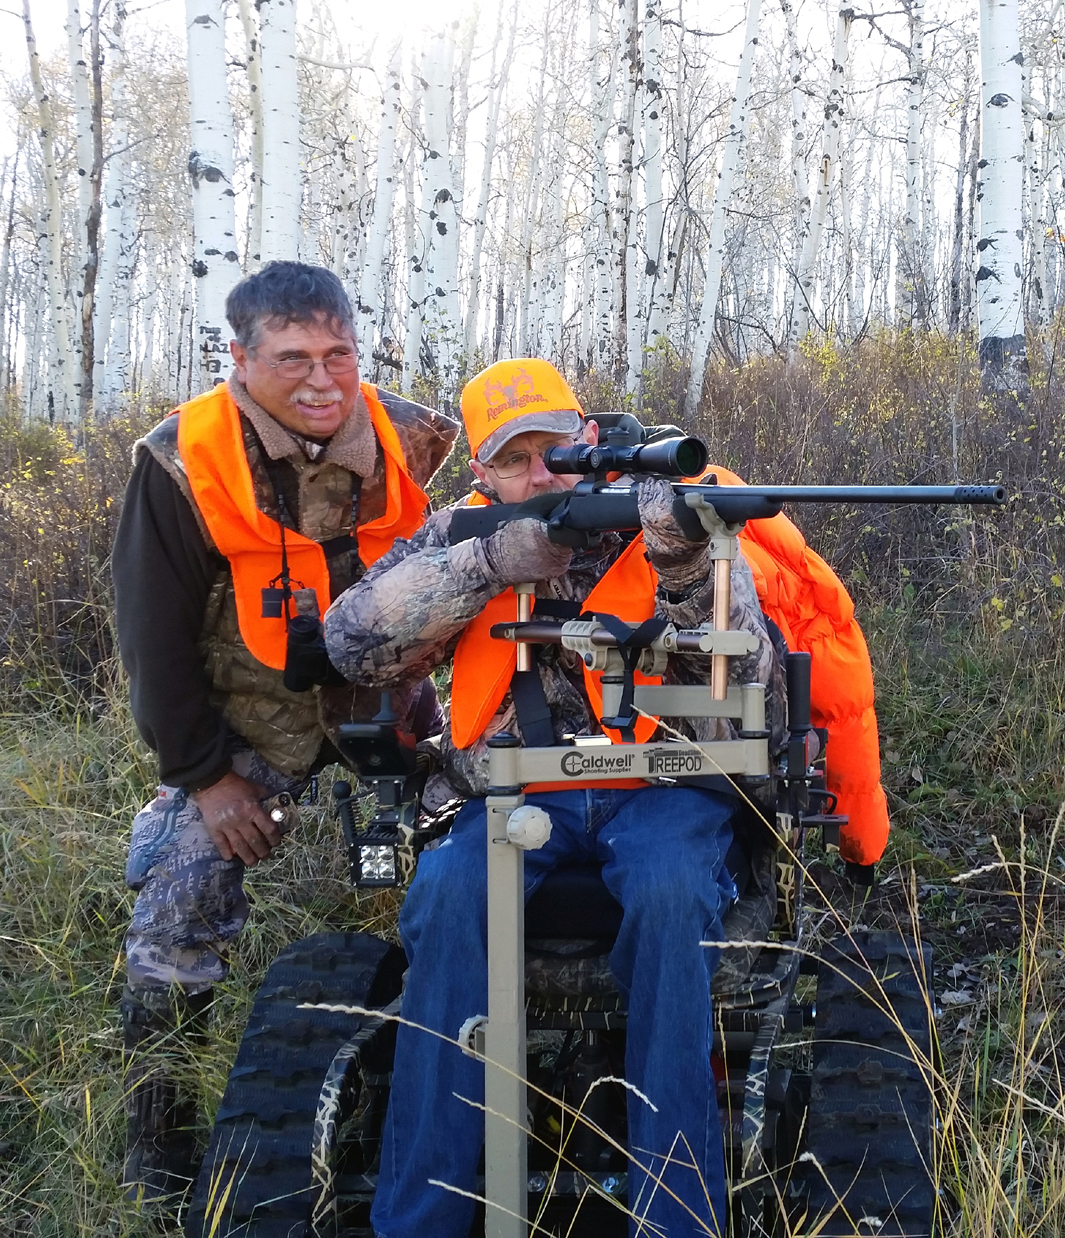 Outdoor Buddies President Larry Sanford, left, helps member hunter Sam Lomen, of California, line up a shot on a bull elk a few weeks ago near Twentymile Coal Mine. The three-decade-old nonprofit helps disabled members like Lomen fulfill their outdoor dreams by setting up buddy hunts. Outdoor Buddies has about 800 members spanning 39 states and all hunts are done in Colorado on primarily private land.